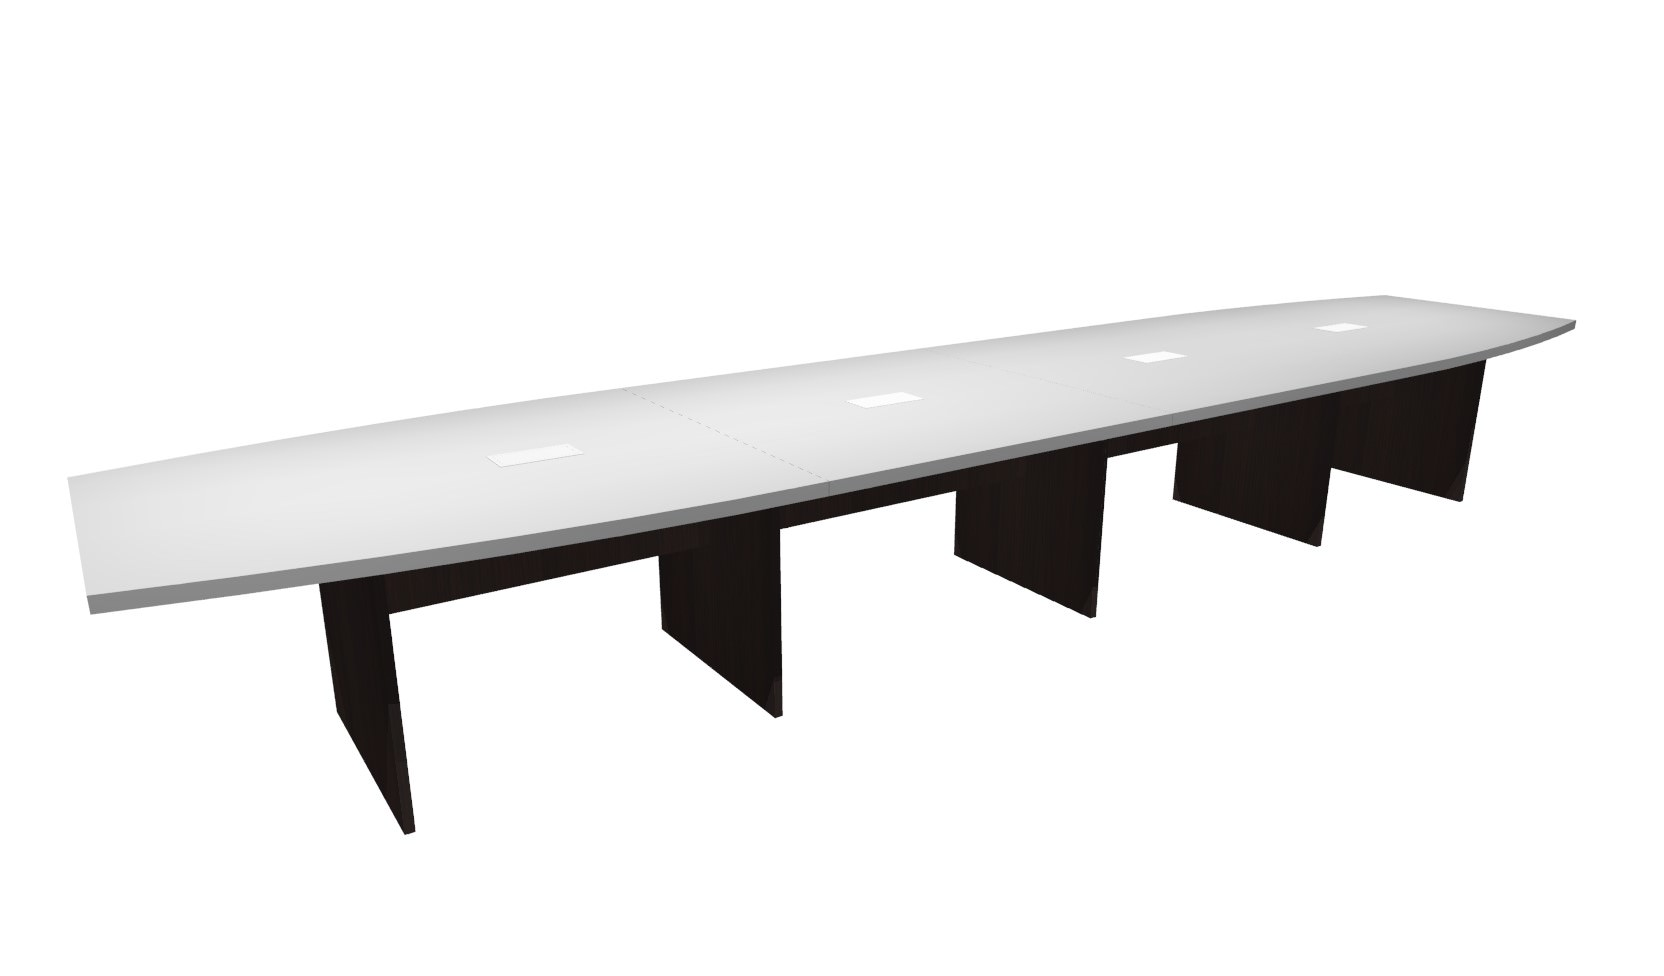 FT White Espresso Boat Shaped Conference Table - 18 ft conference table